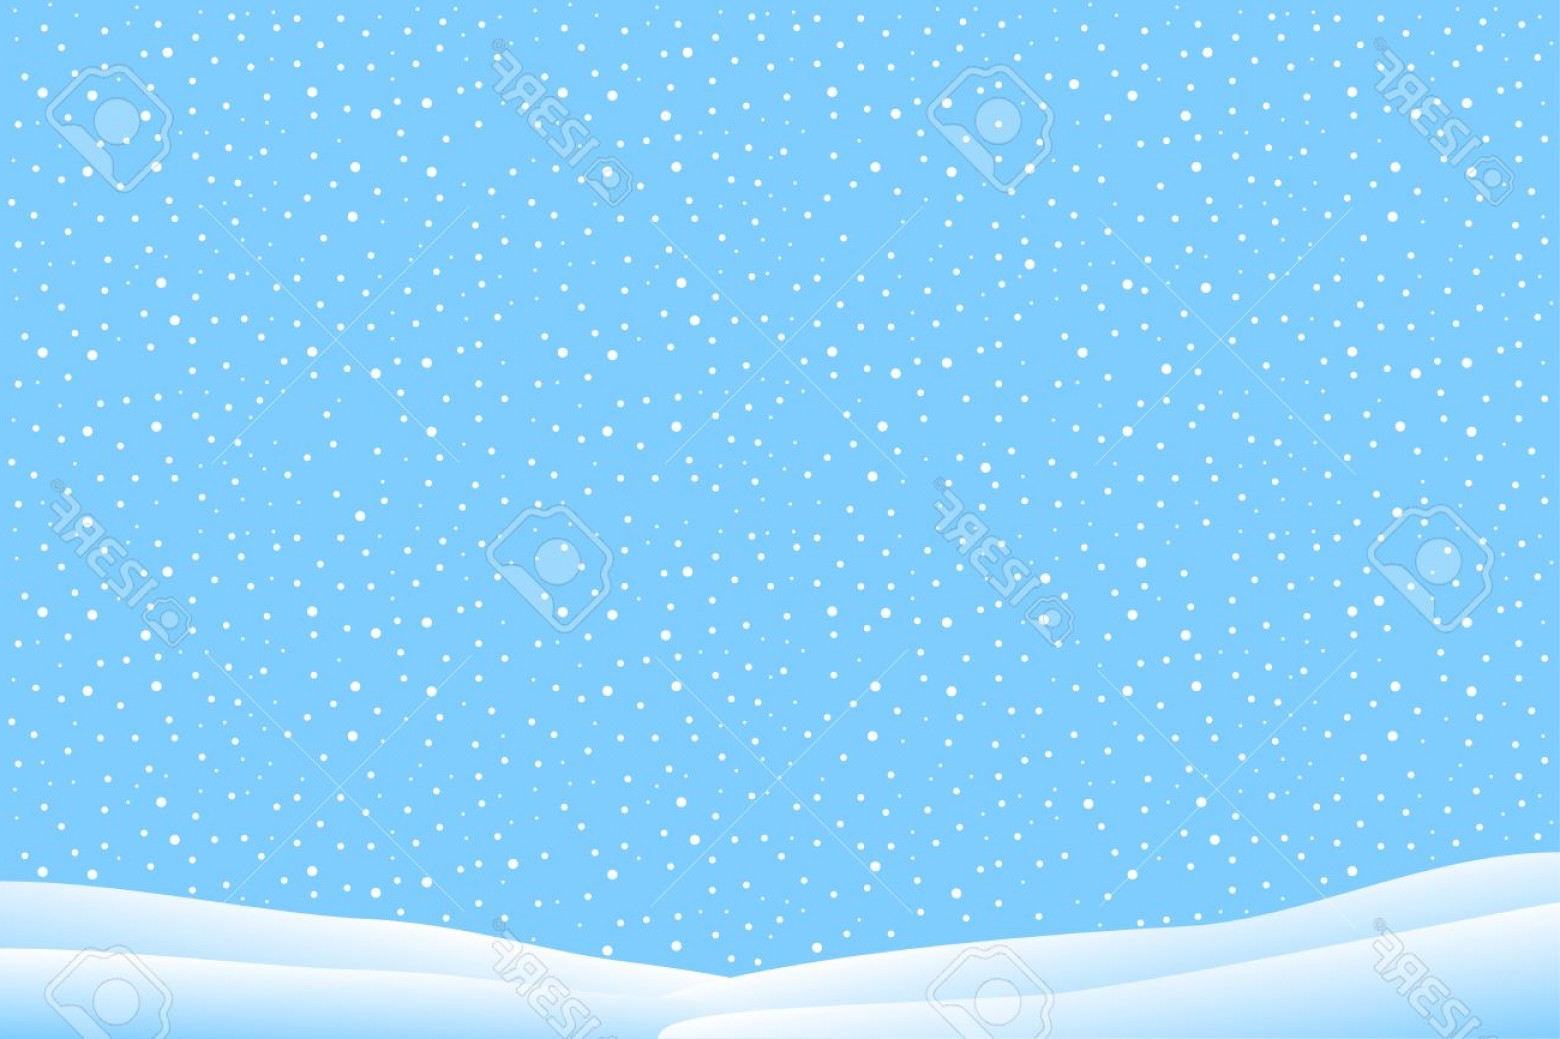 Snow Falling Vector Free: Photowinter Landscape With Falling Snow Vector Illustration